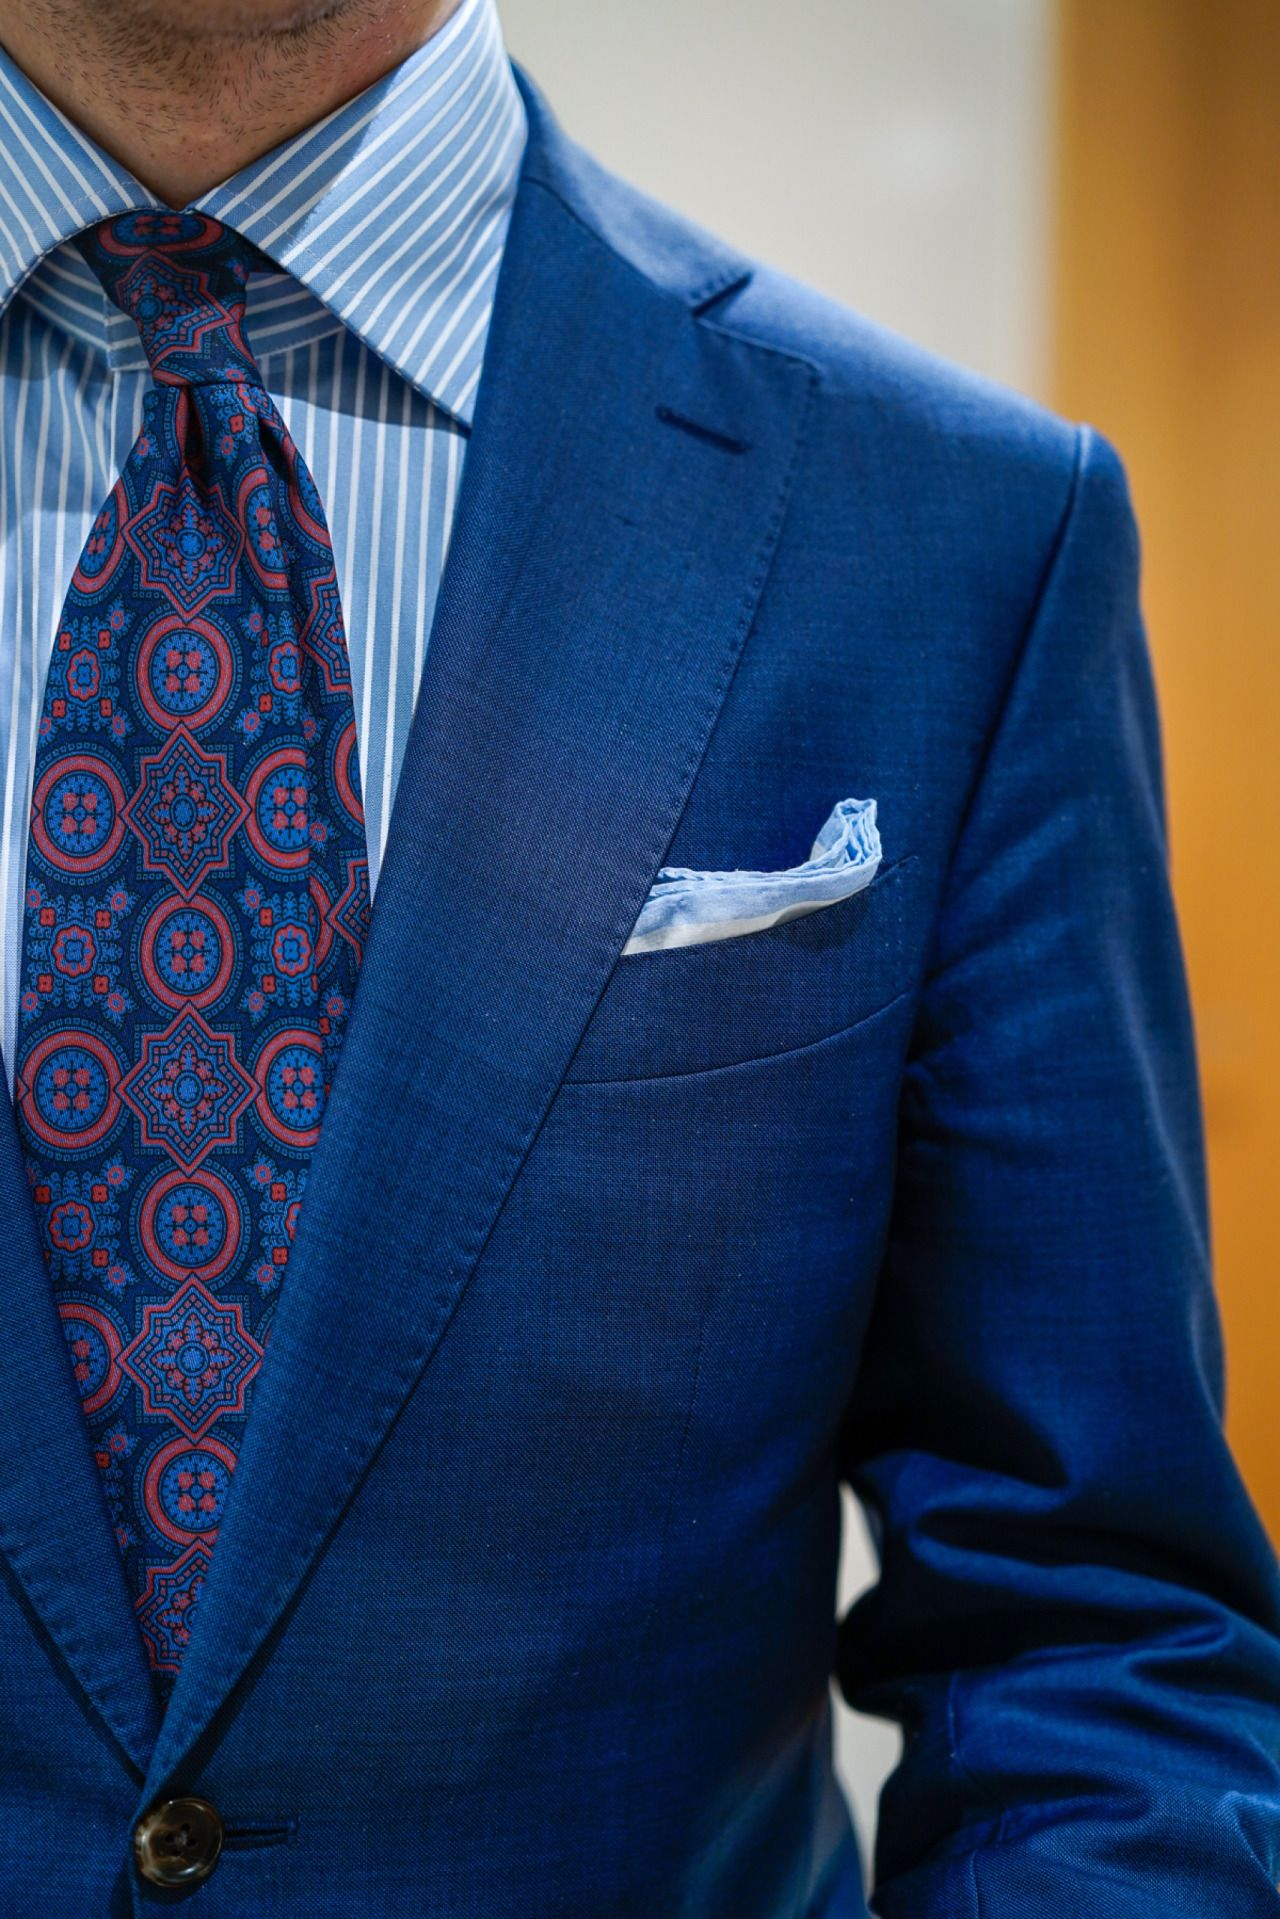 mikolajek:  Pattern tie with shades of blue Blueloafers Blog (www.blueloafers.com)